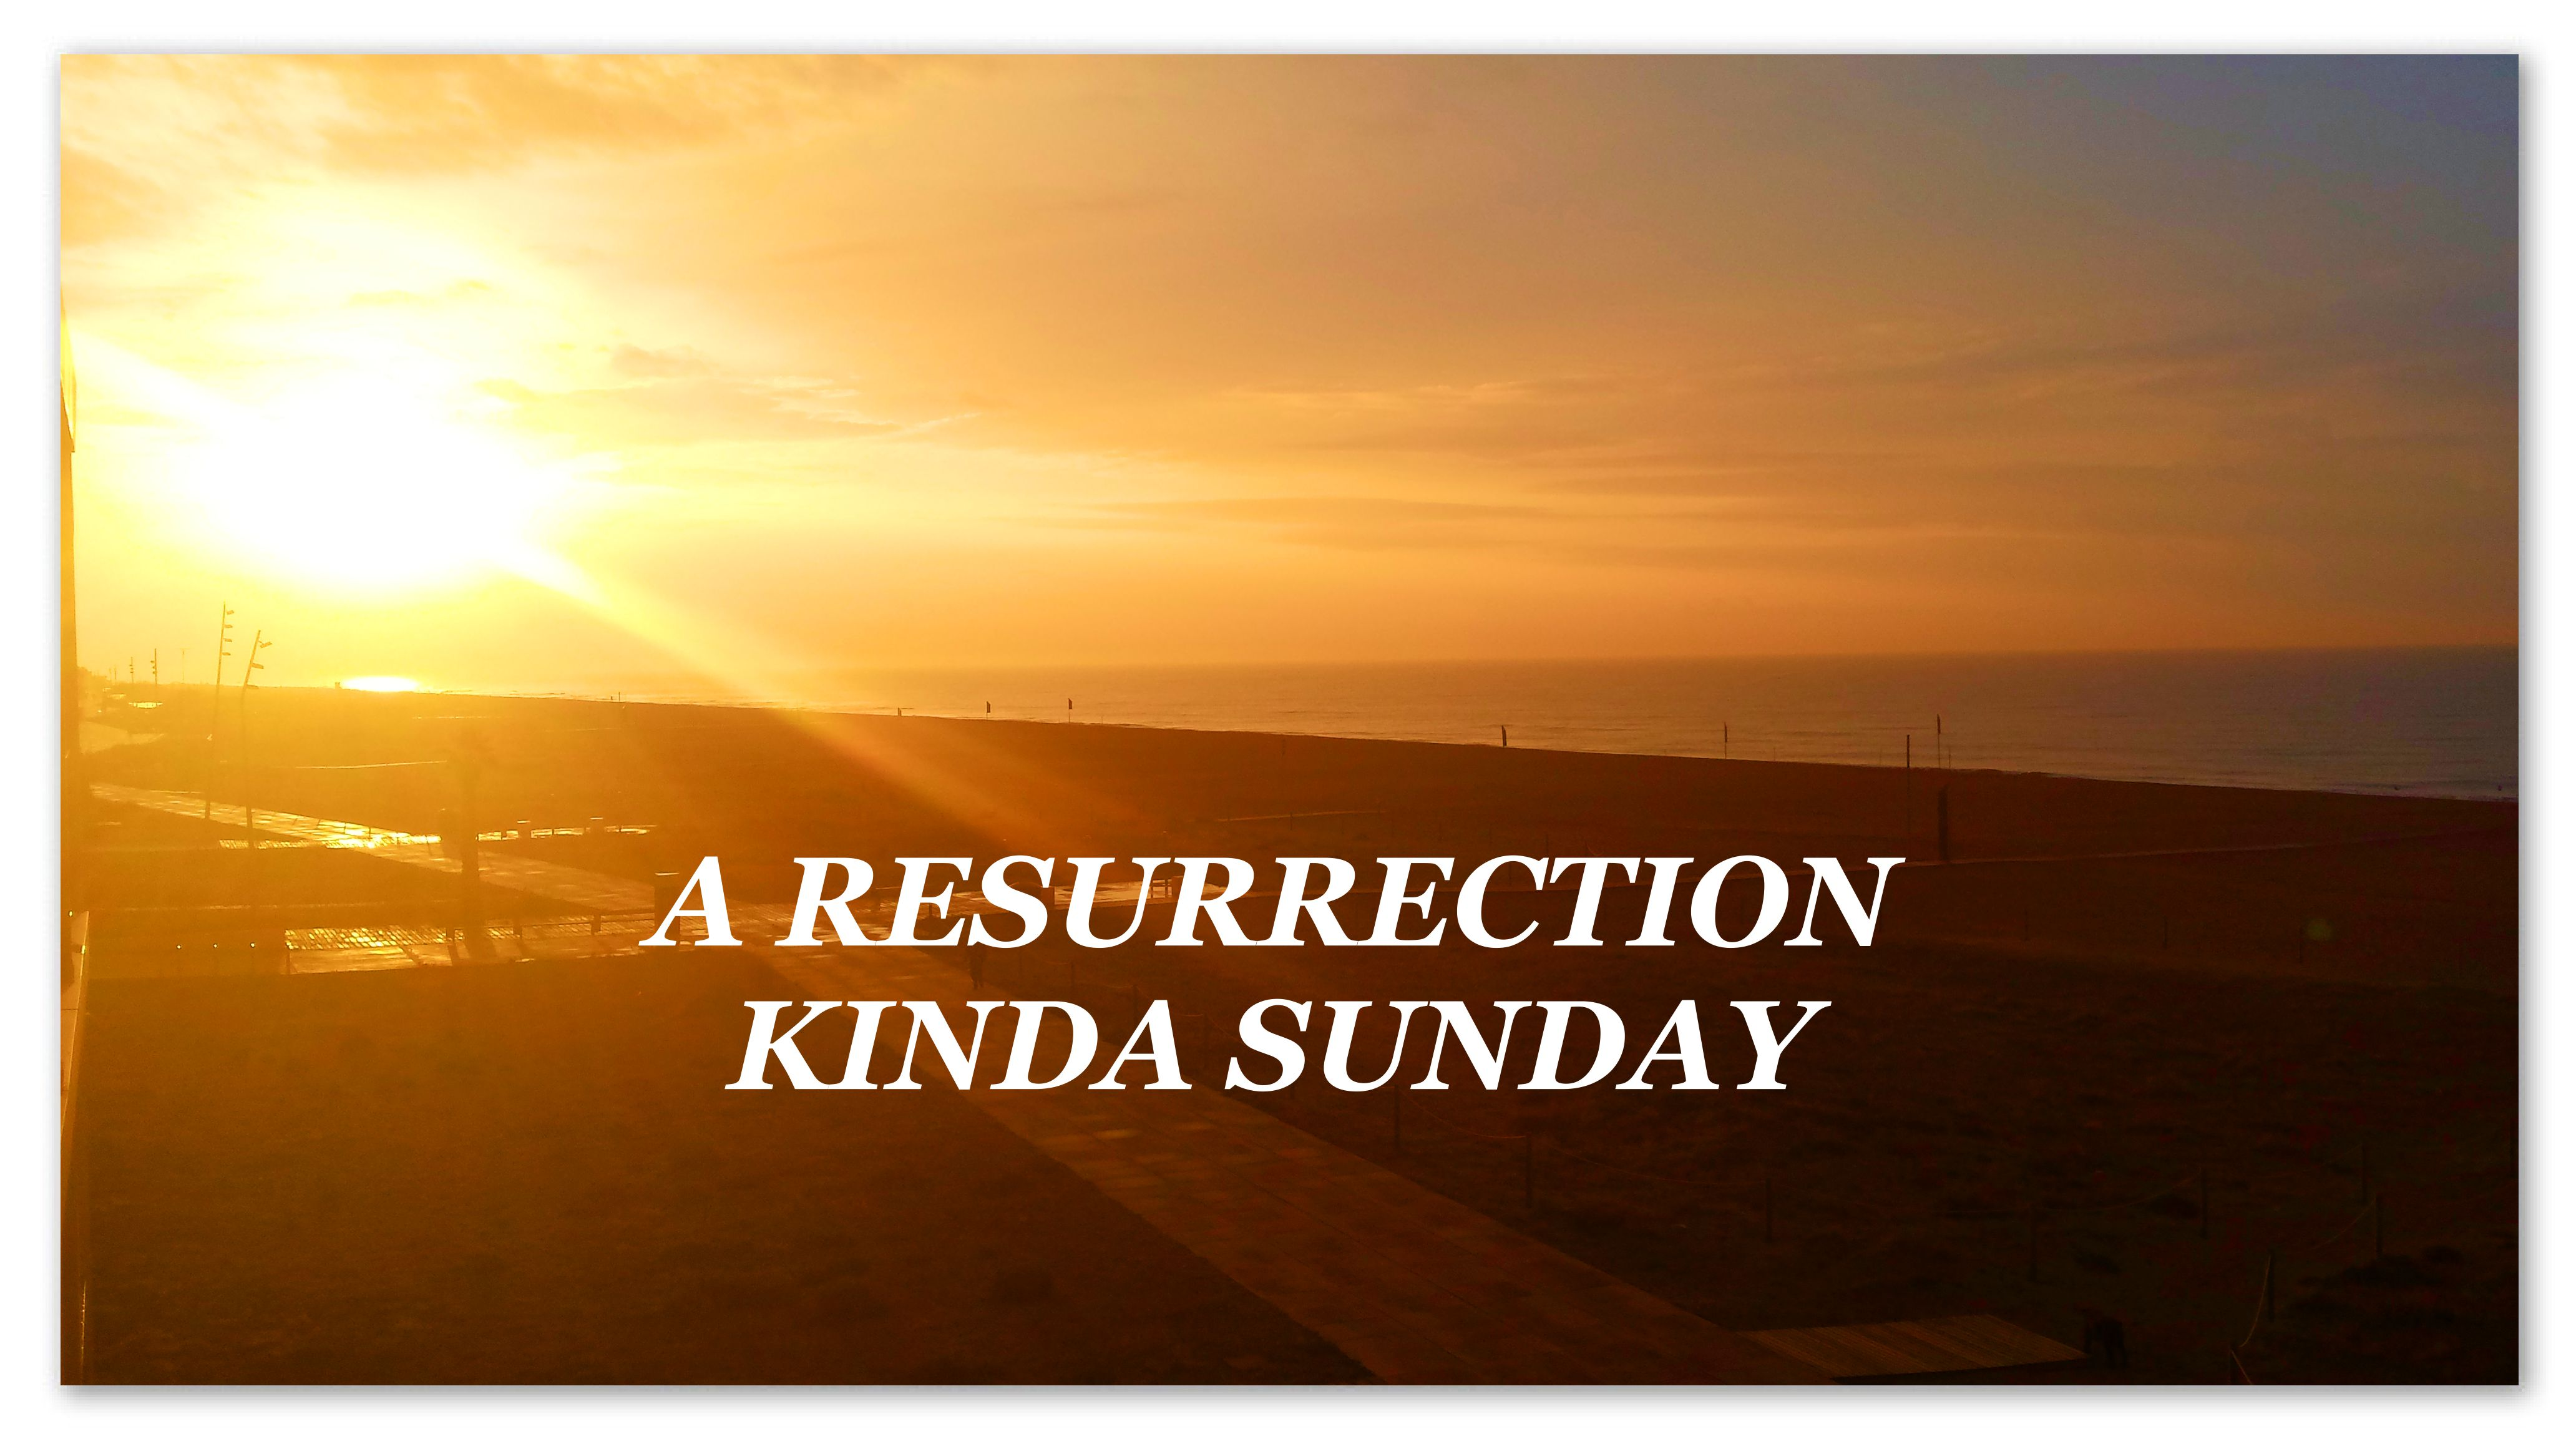 A Resurrection Kinda Sunday A New Cycle Of Life Light And Love Is